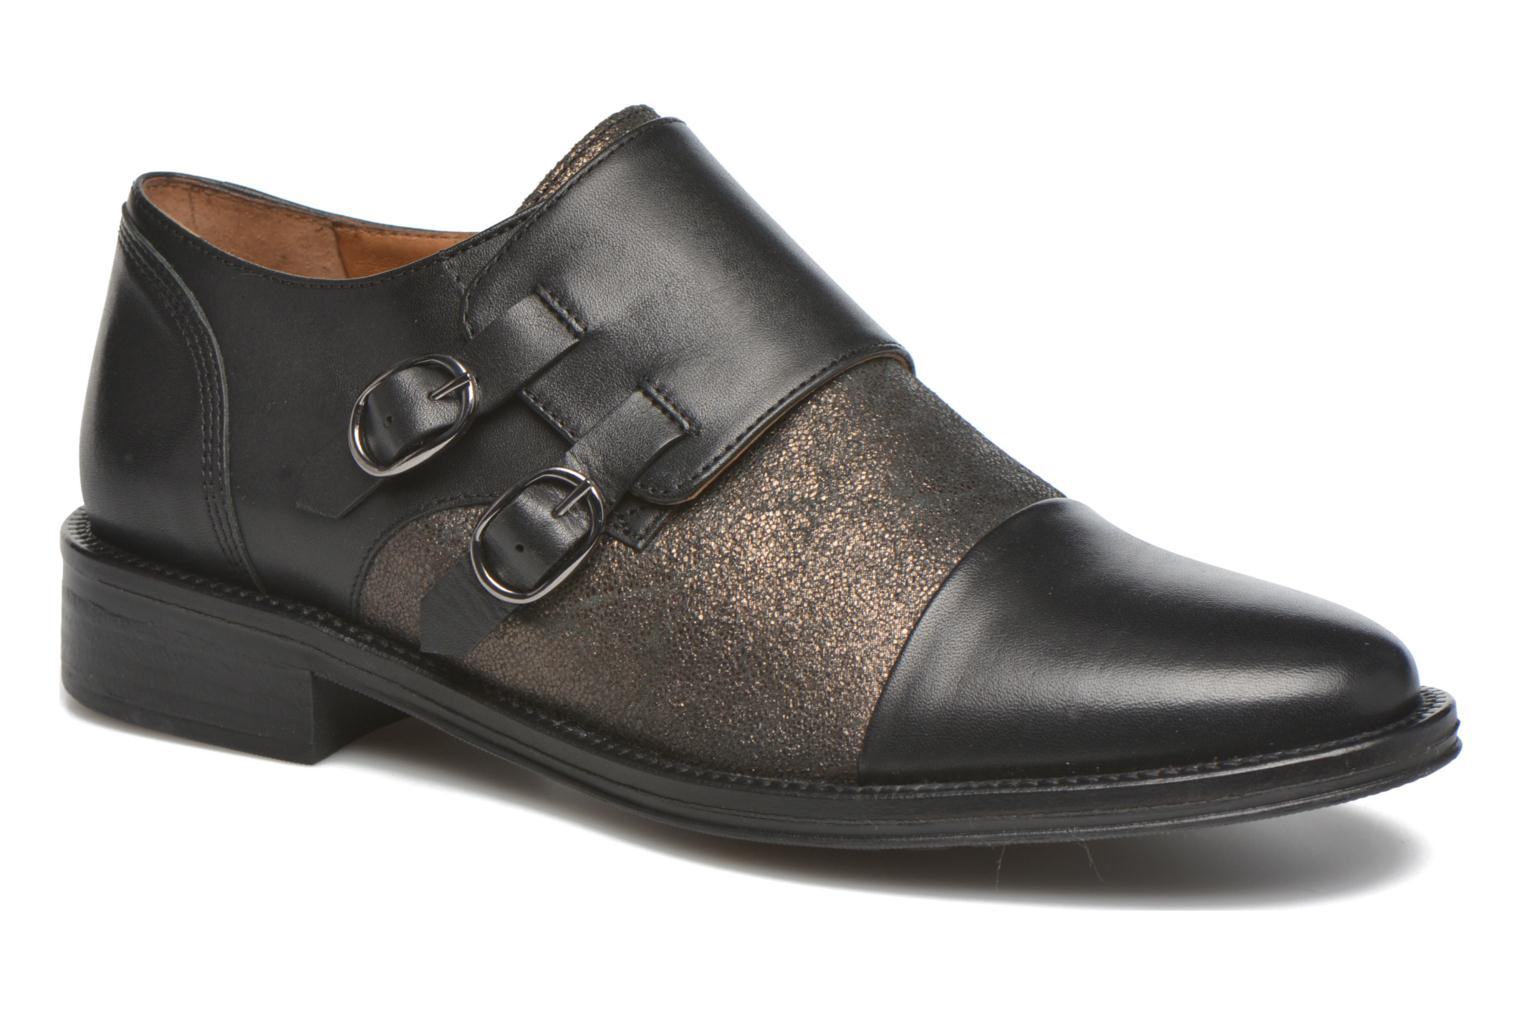 Marques Chaussure femme Schmoove Woman femme Newton sauvage preto pewter